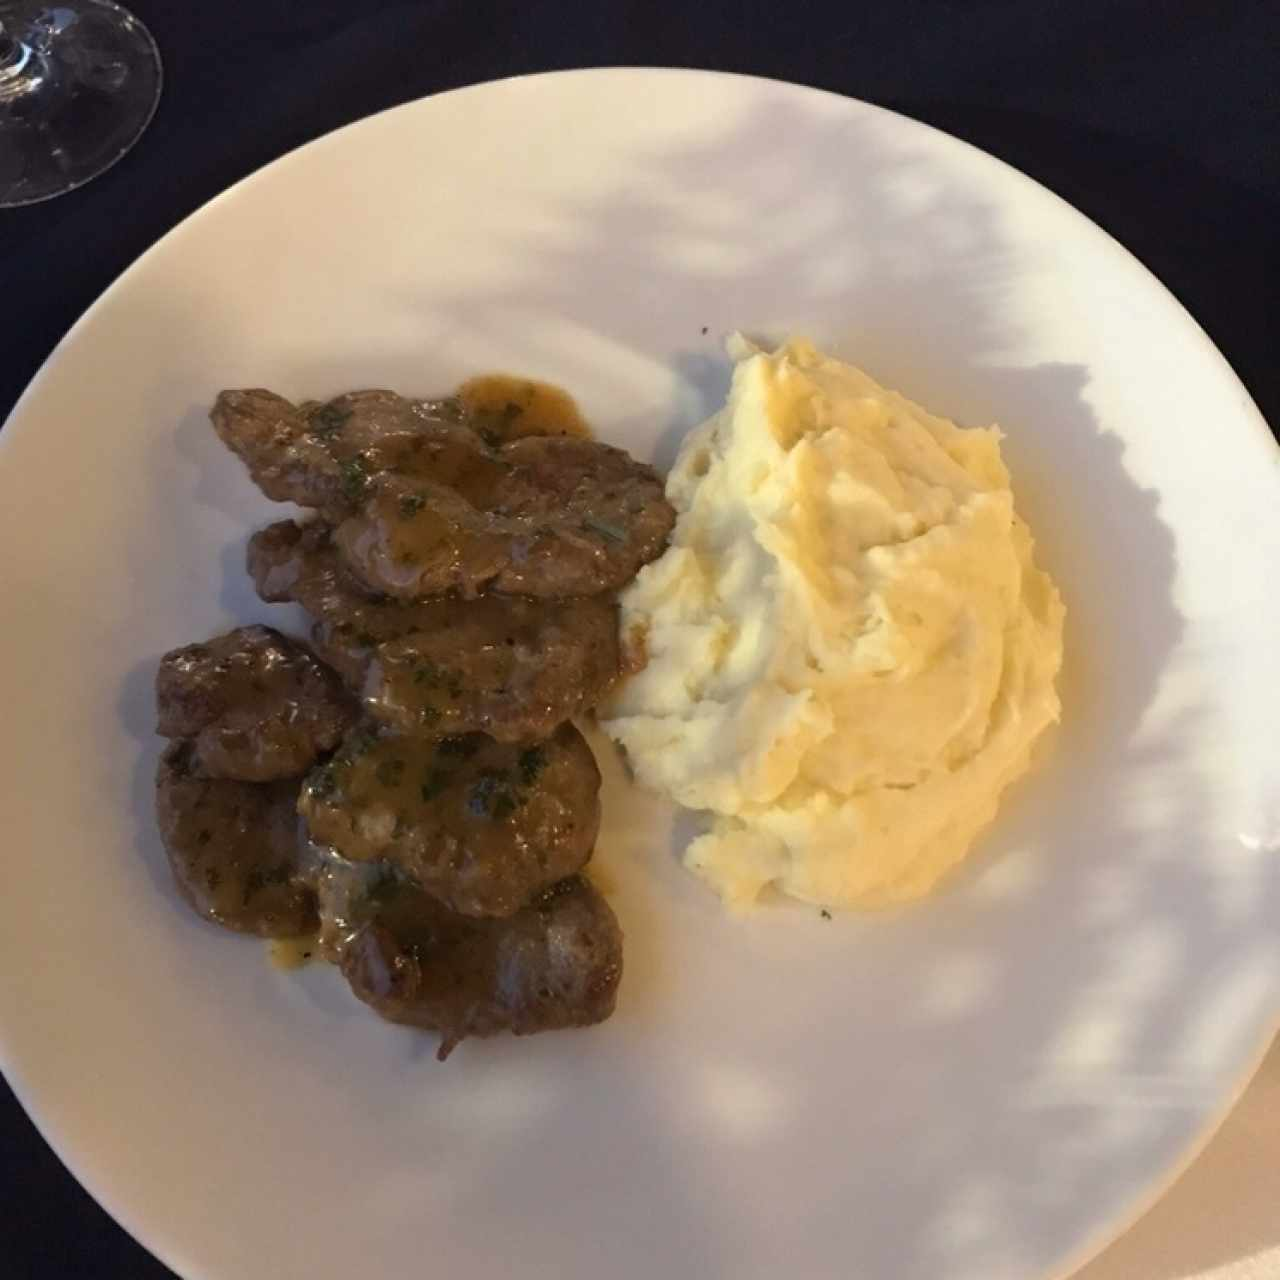 FILETTO EN SALSA DE CHAMPIÑONES